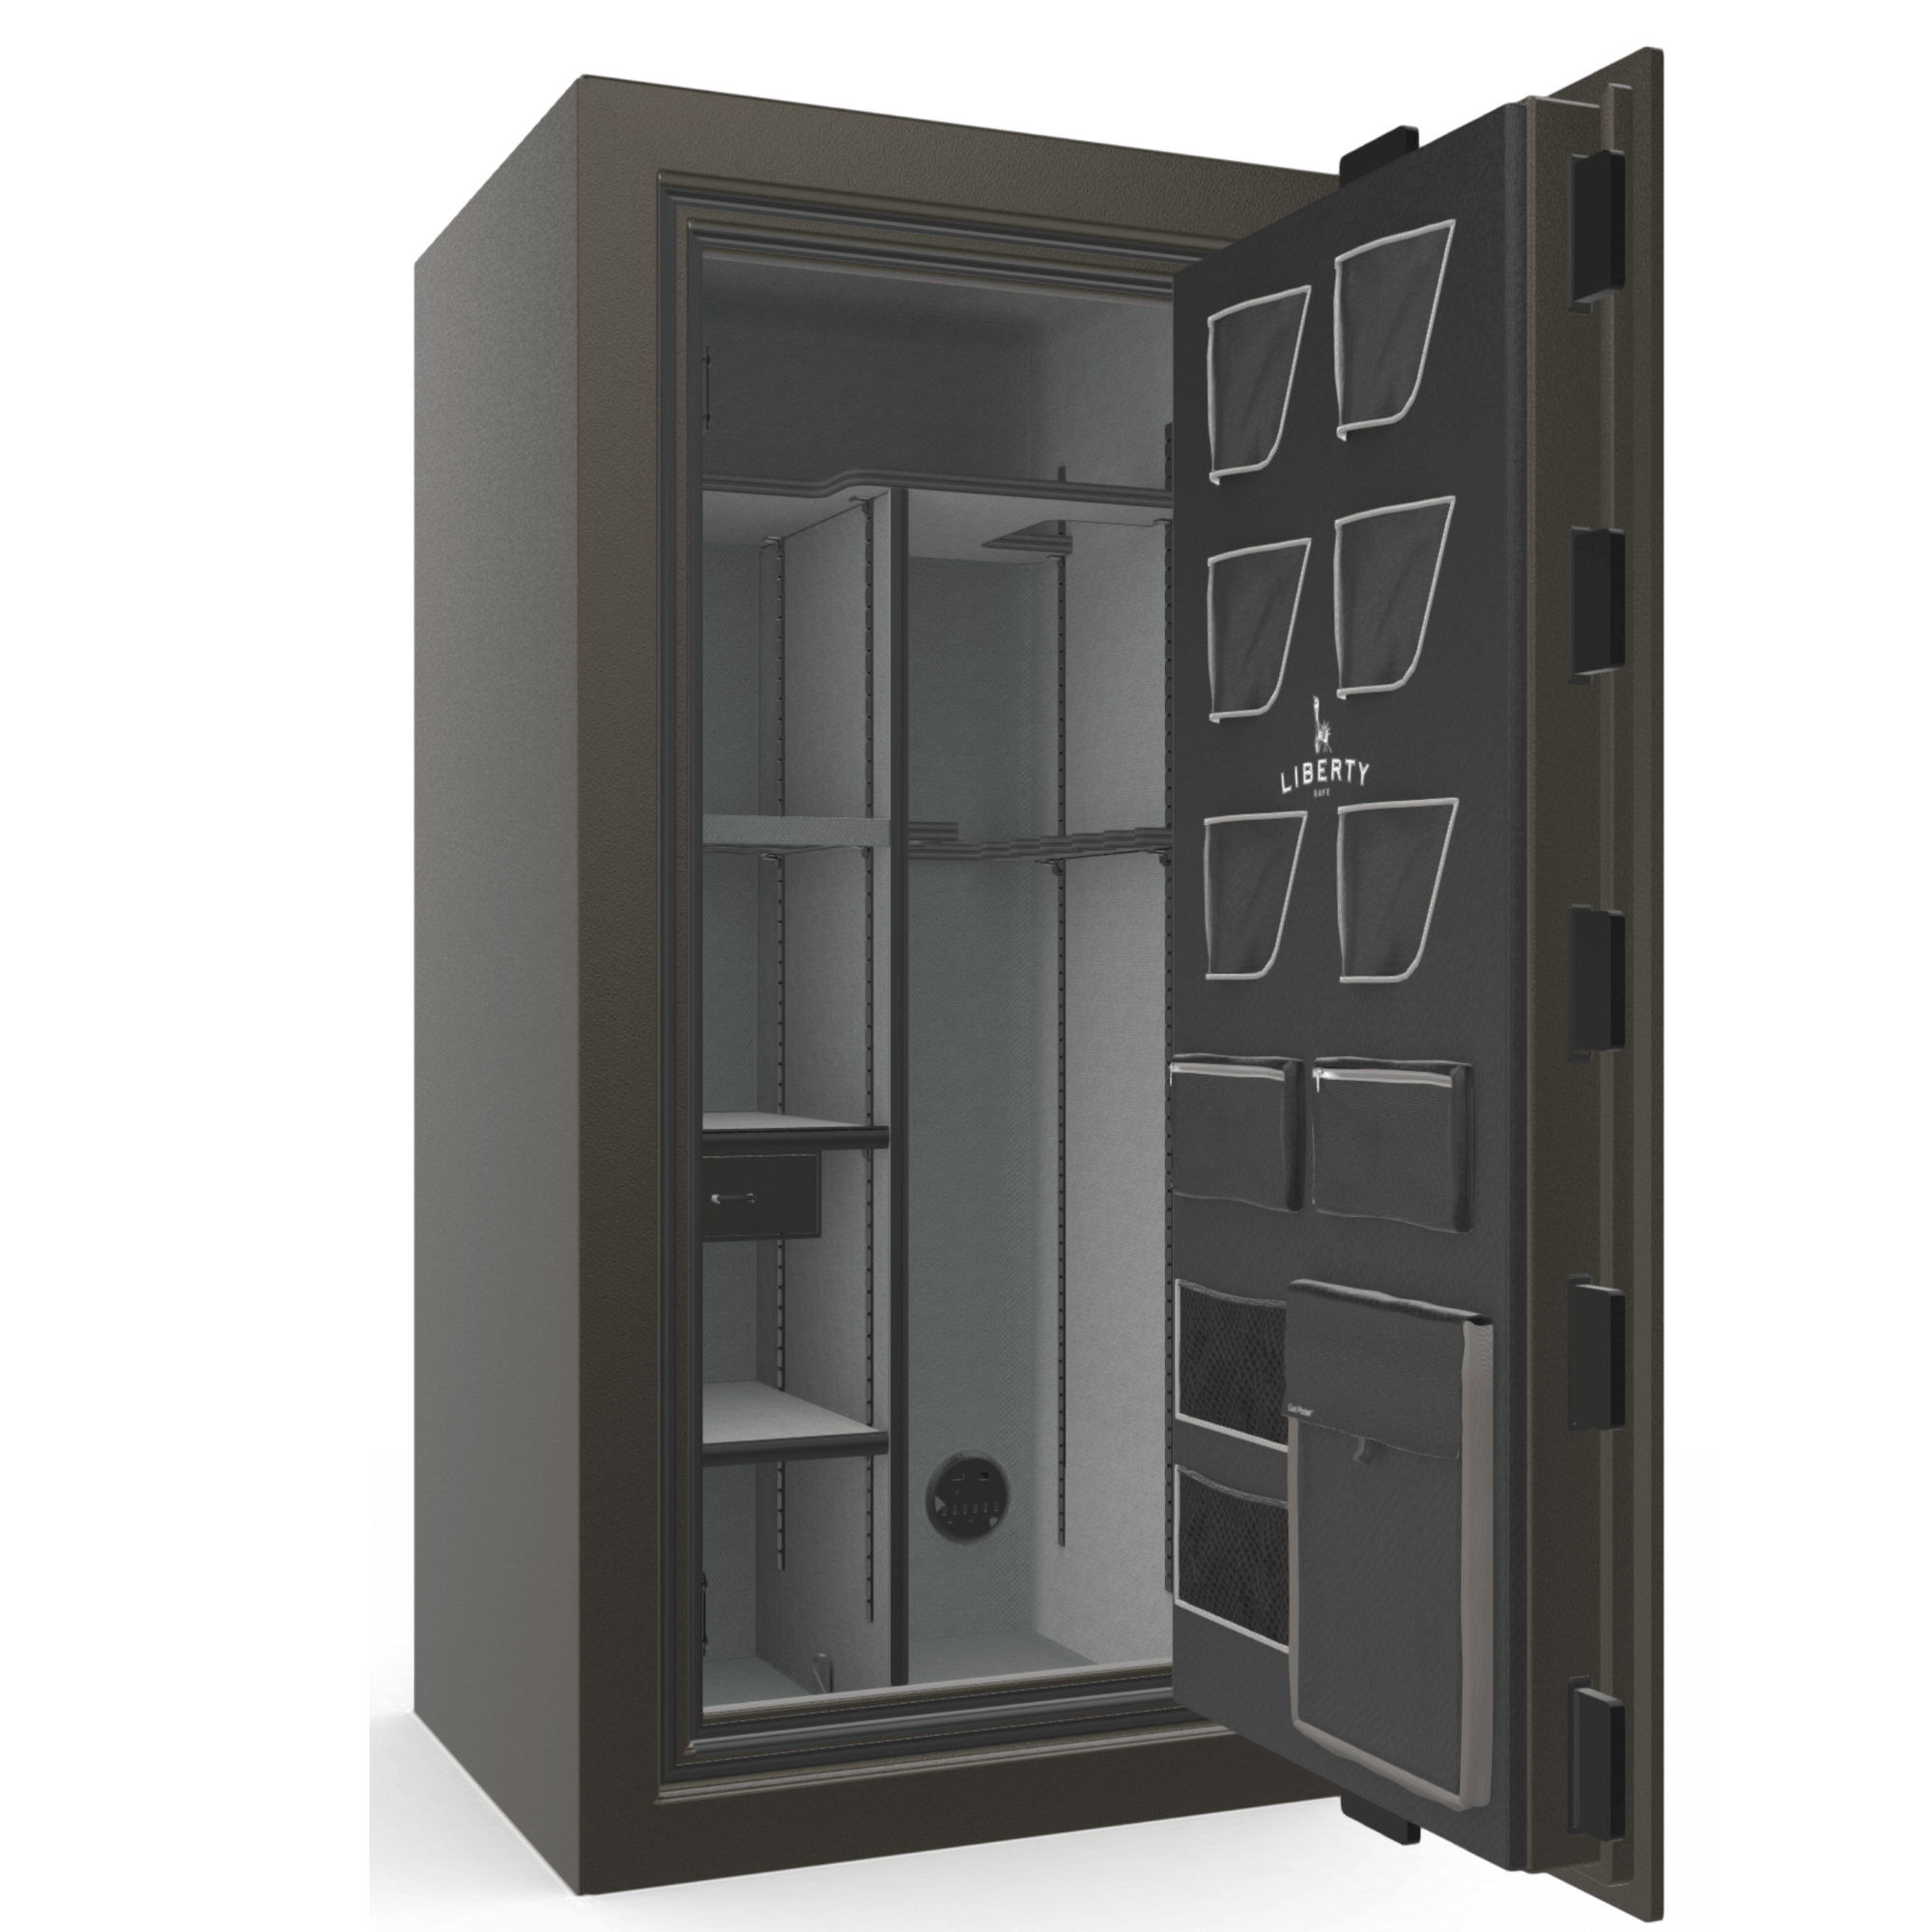 "Classic Plus Series | Level 7 Security | 110 Minute Fire Protection | 25 | DIMENSIONS: 60.5""(H) X 30""(W) X 28.5""(D) 